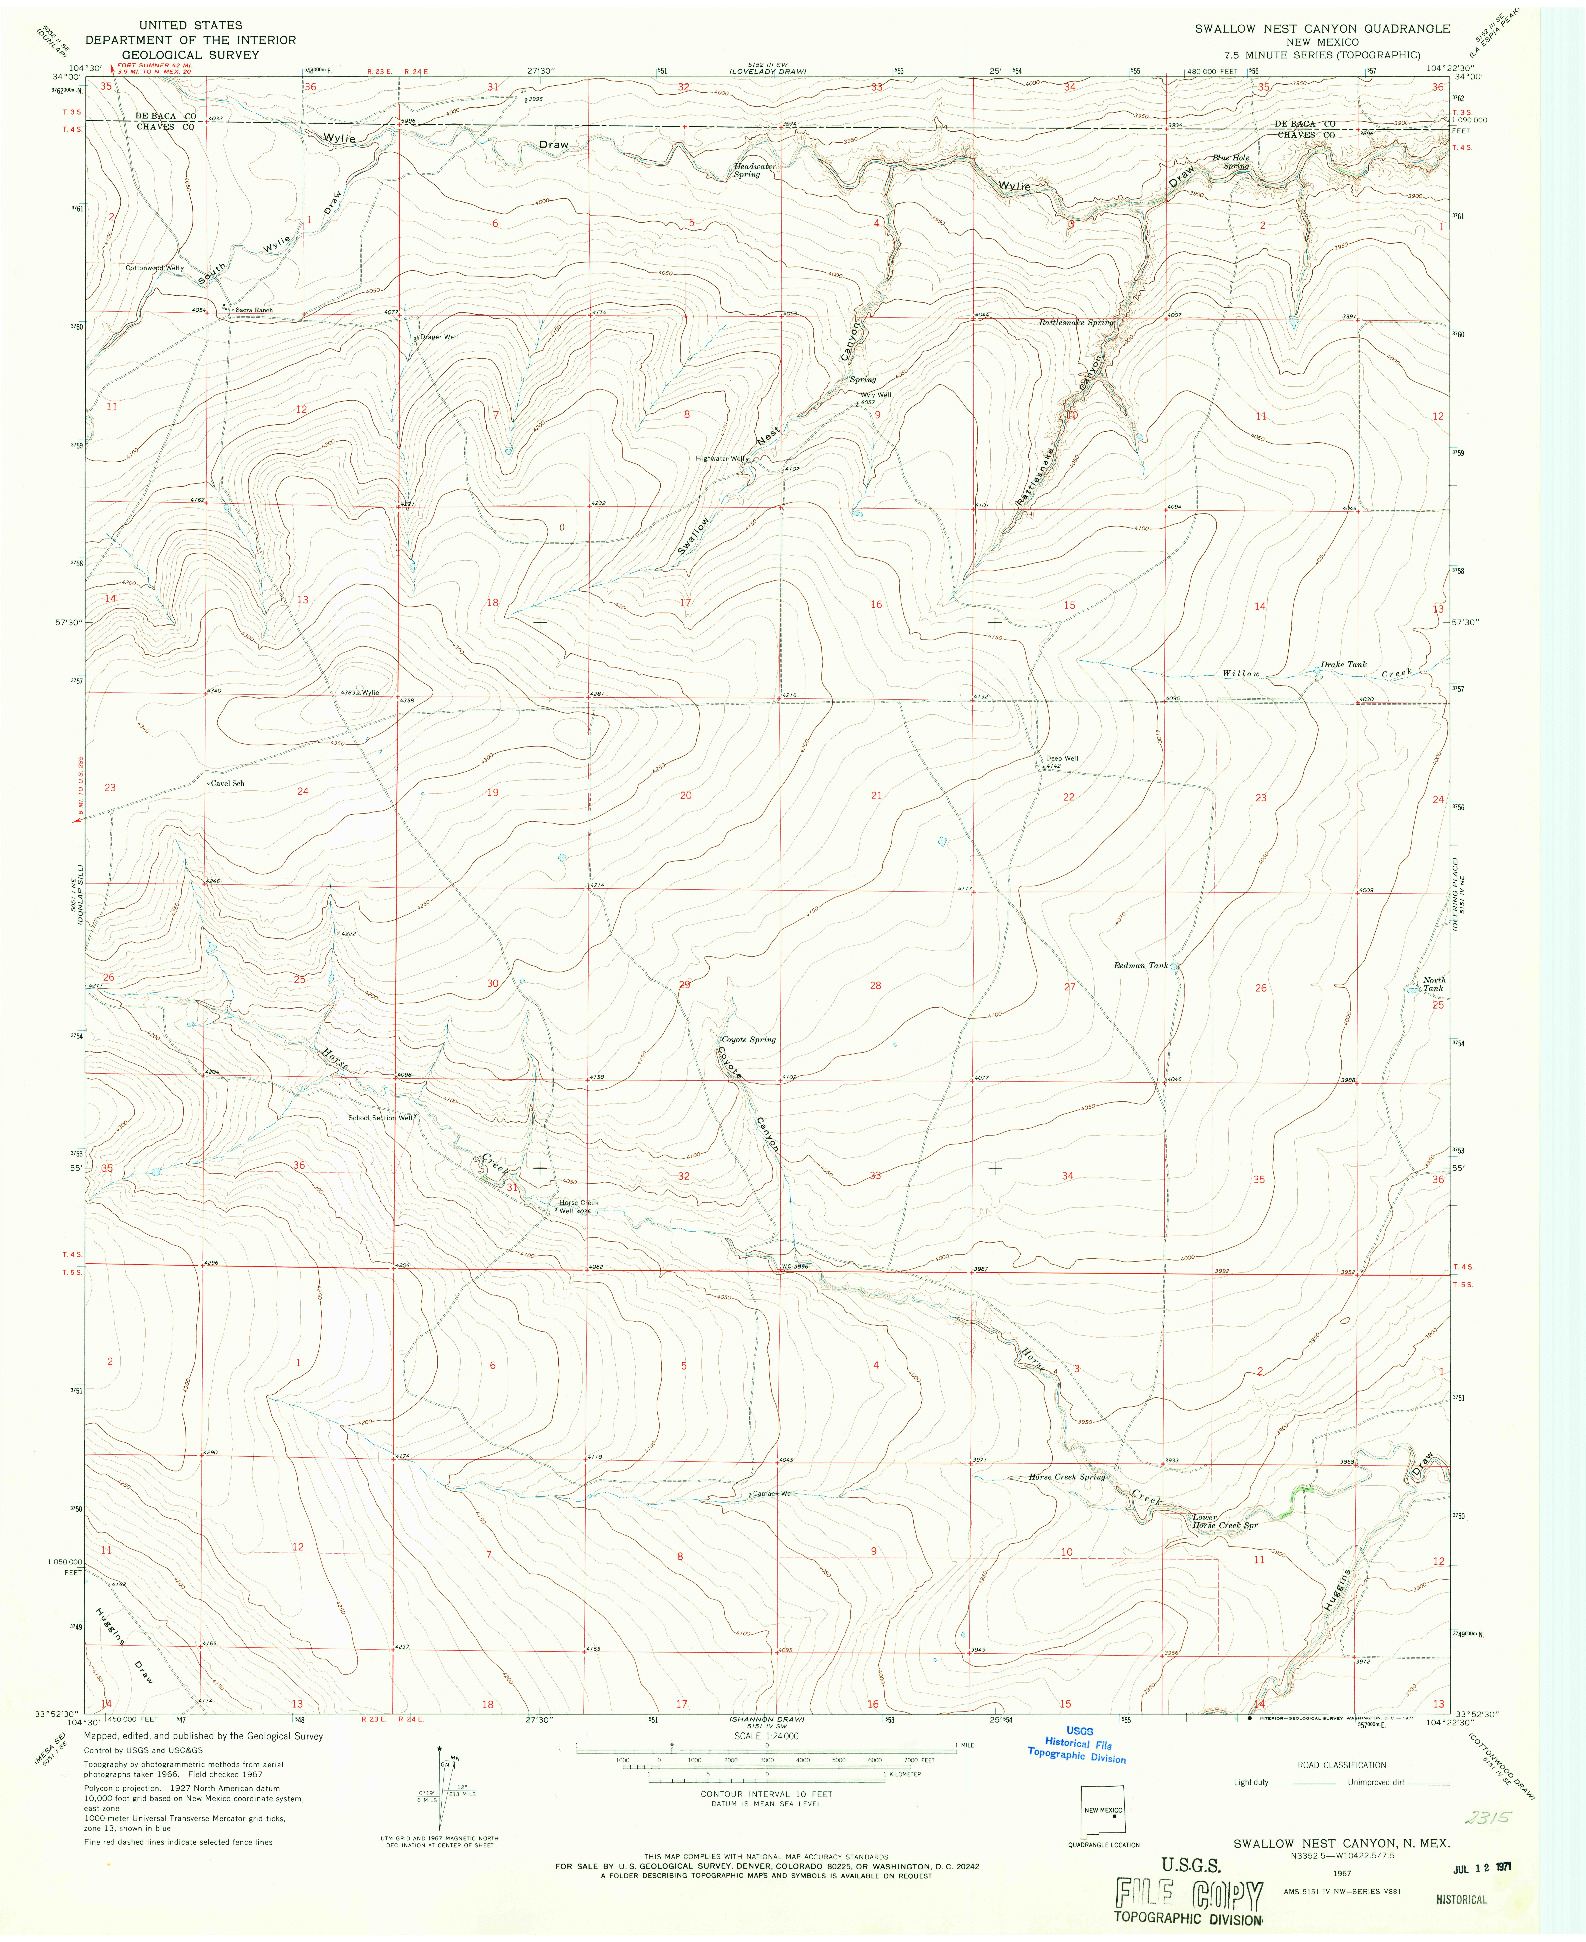 USGS 1:24000-SCALE QUADRANGLE FOR SWALLOW NEST CANYON, NM 1967